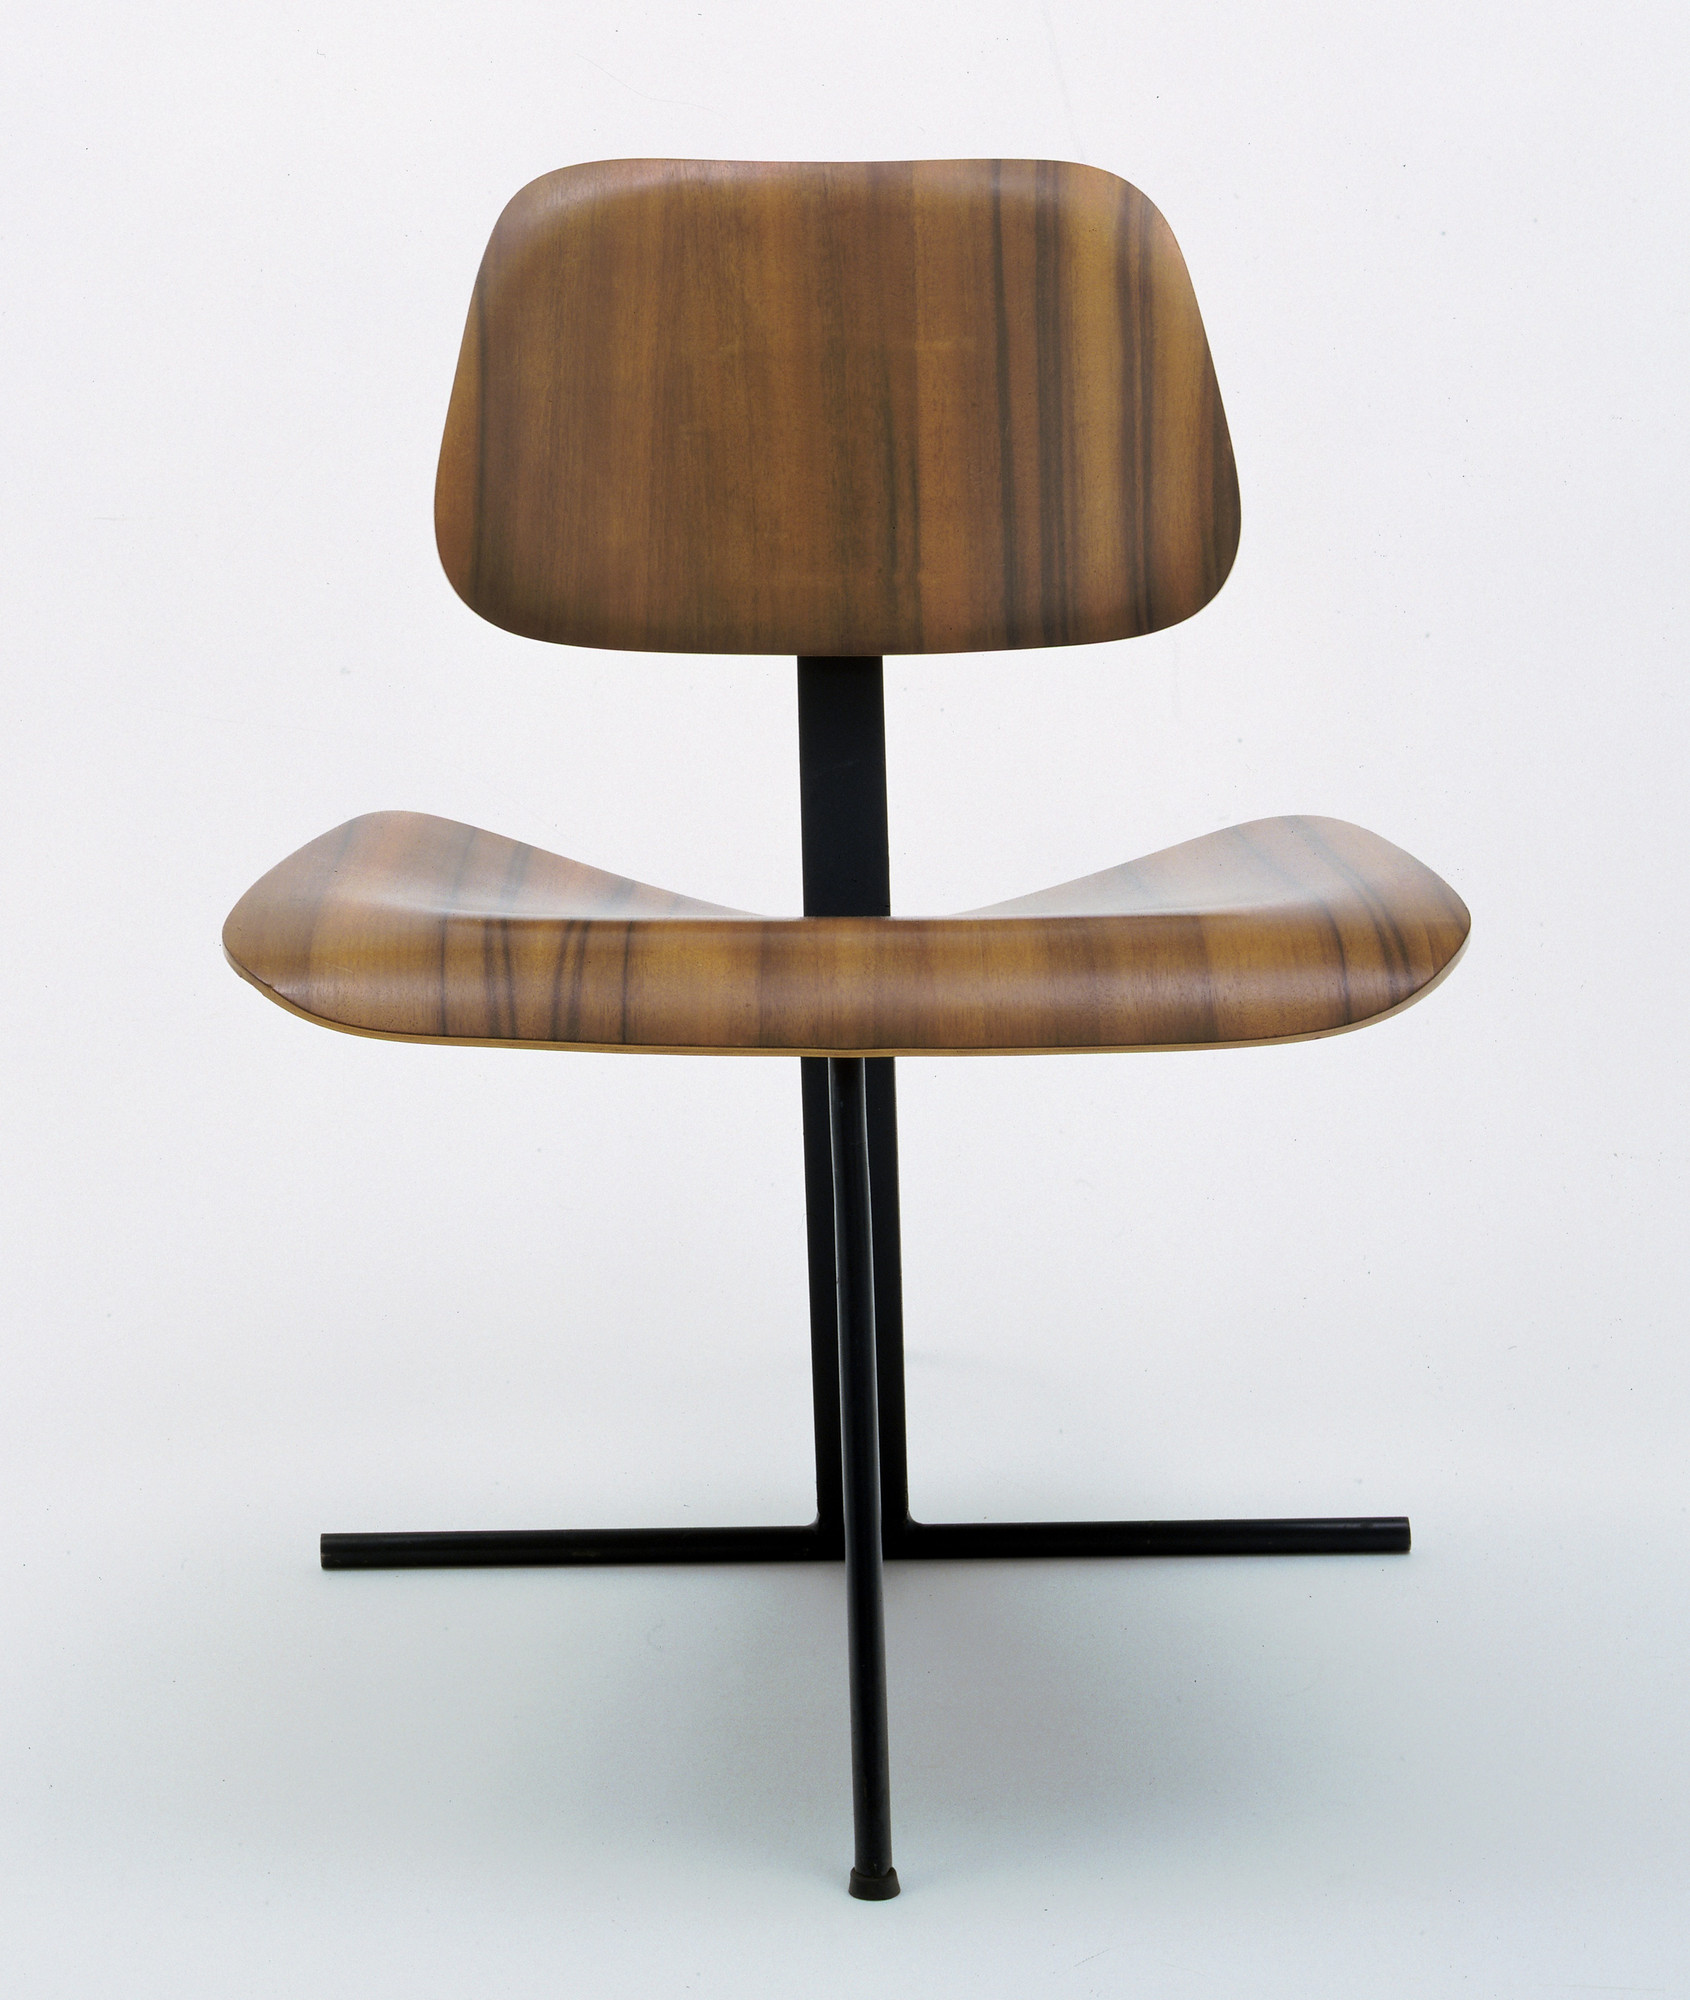 Charles Eames, Ray Eames. Tilt-Back Side Chair. c. 1944